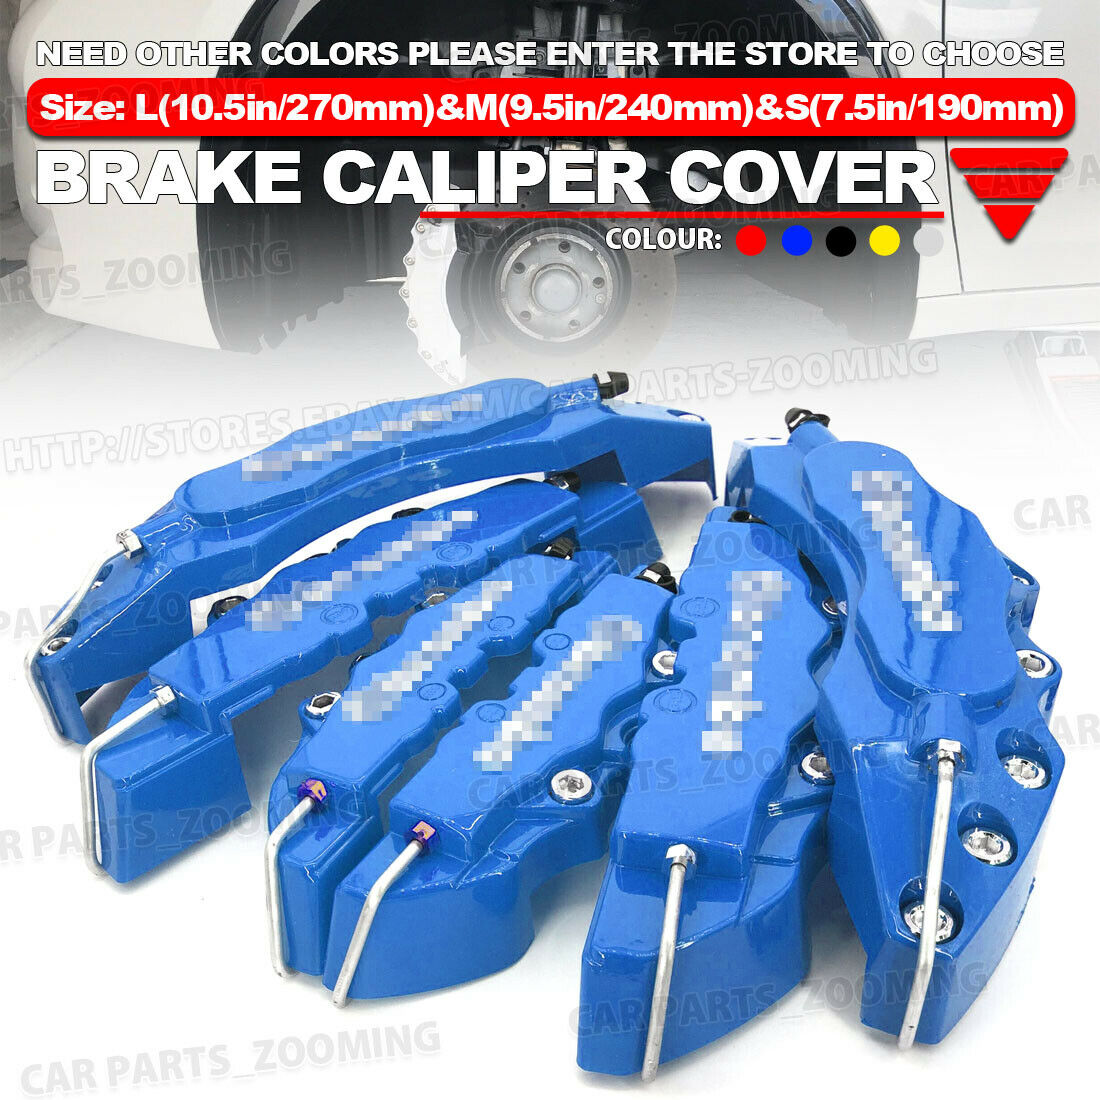 6x Red 3D Style Brake Caliper Cover Universal Car Disc Front Rear Kit L+M+S WL02